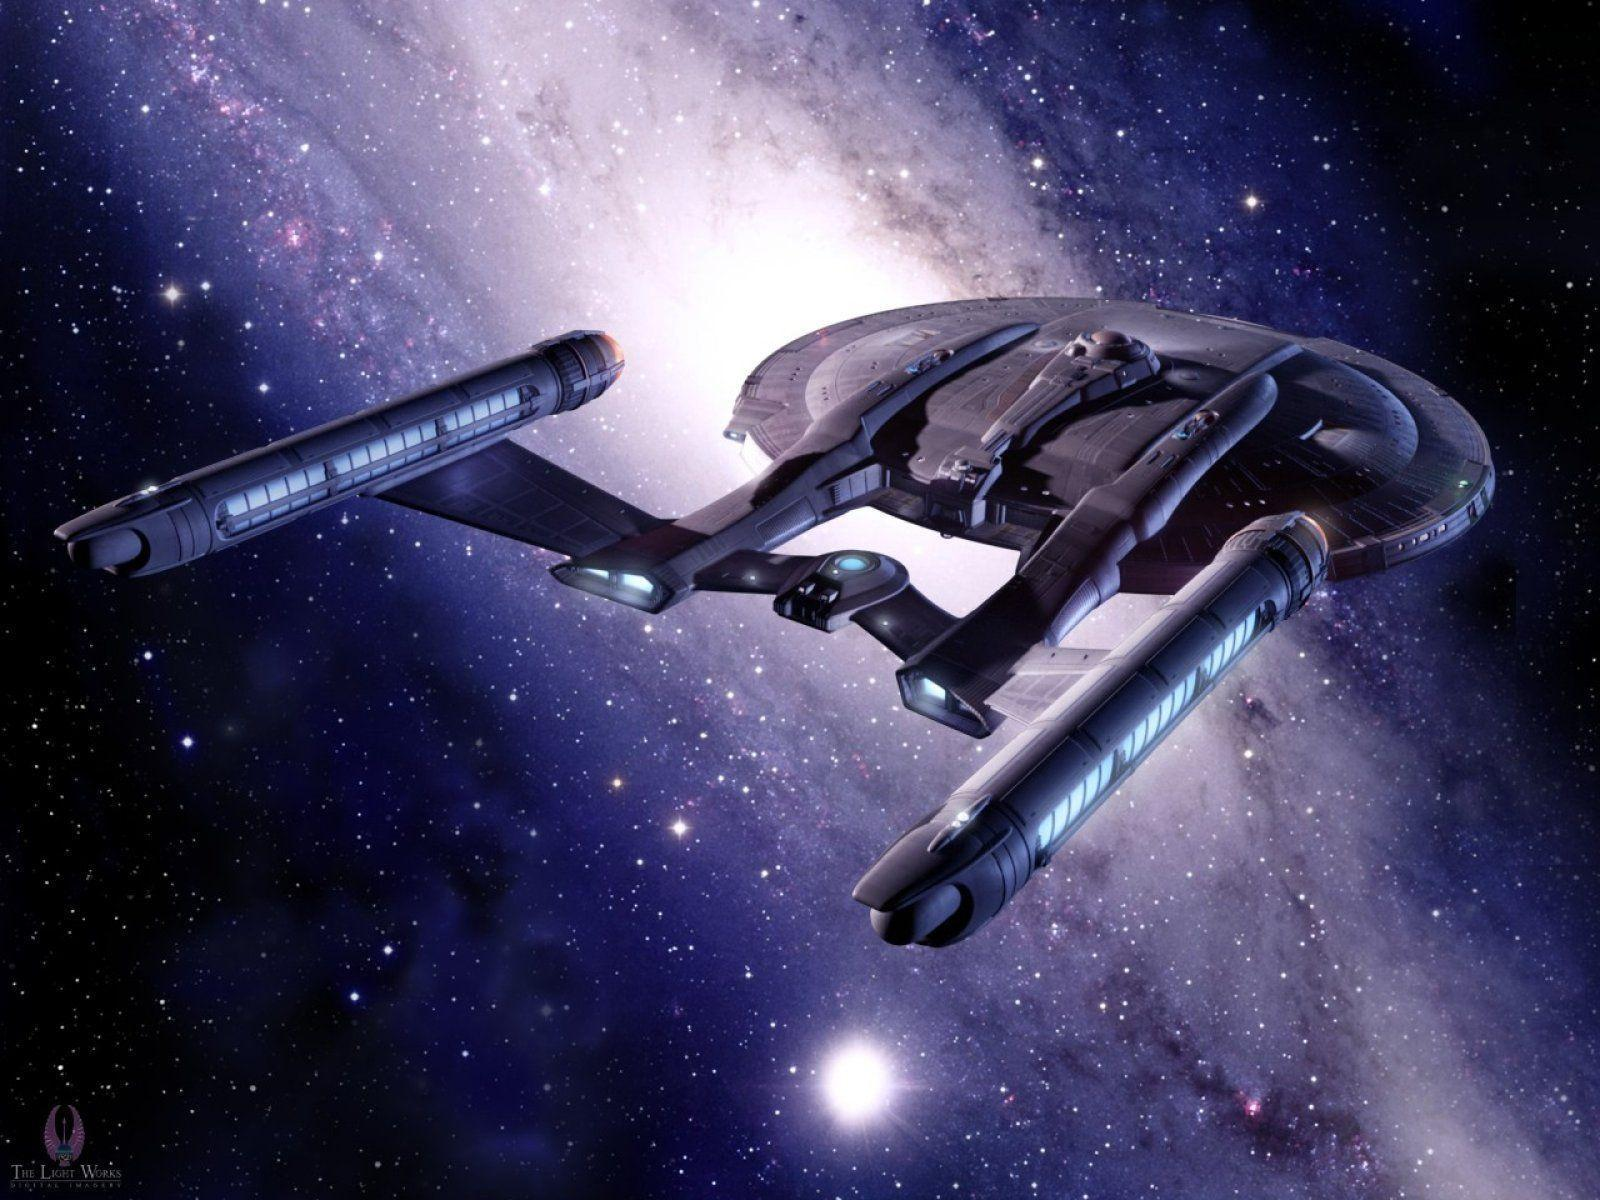 Exceptionnel Star Trek Enterprise Wallpapers - Wallpaper Cave ND85